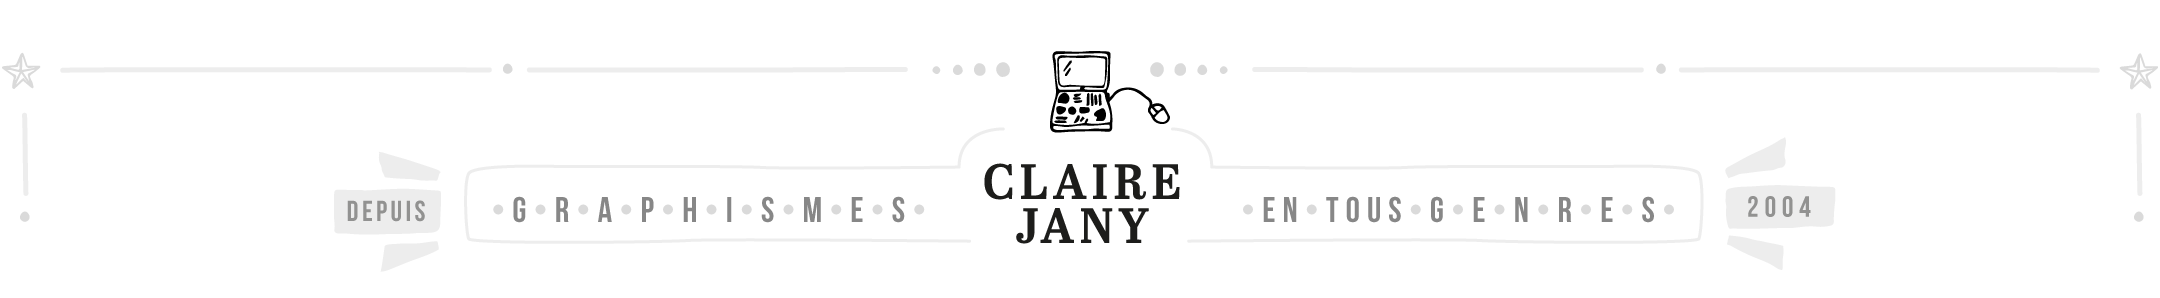 Claire Jany | Graphiste freelance motion & print | Amiens